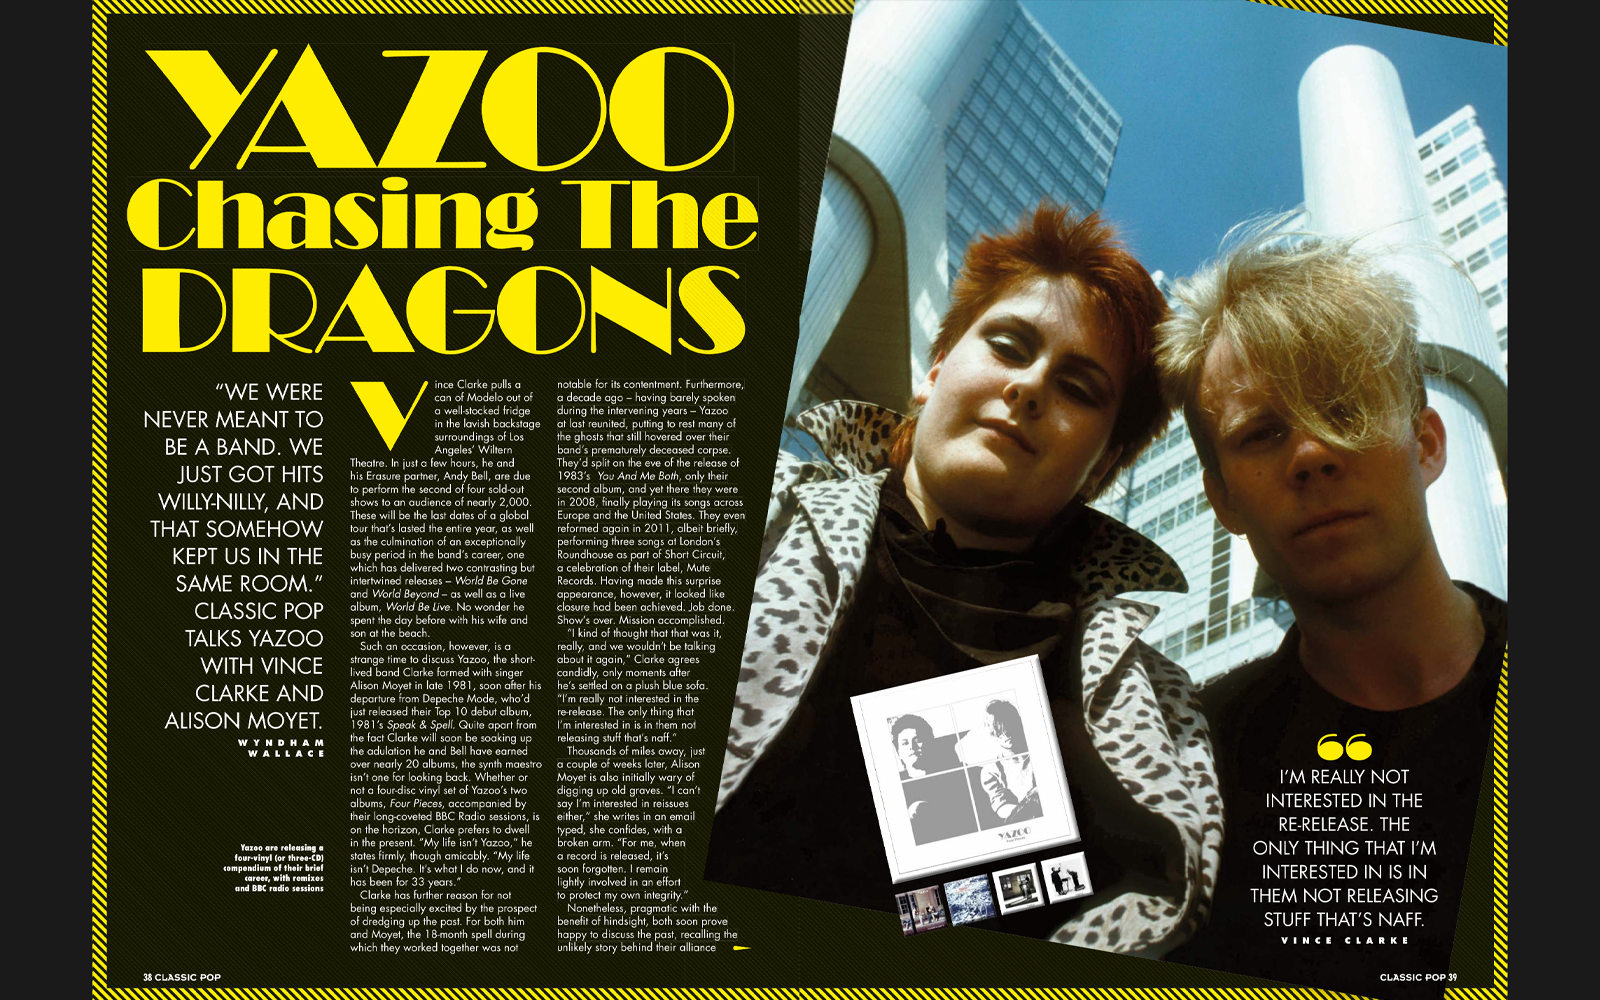 Vince & Alison interviewed in Classic Pop magazine